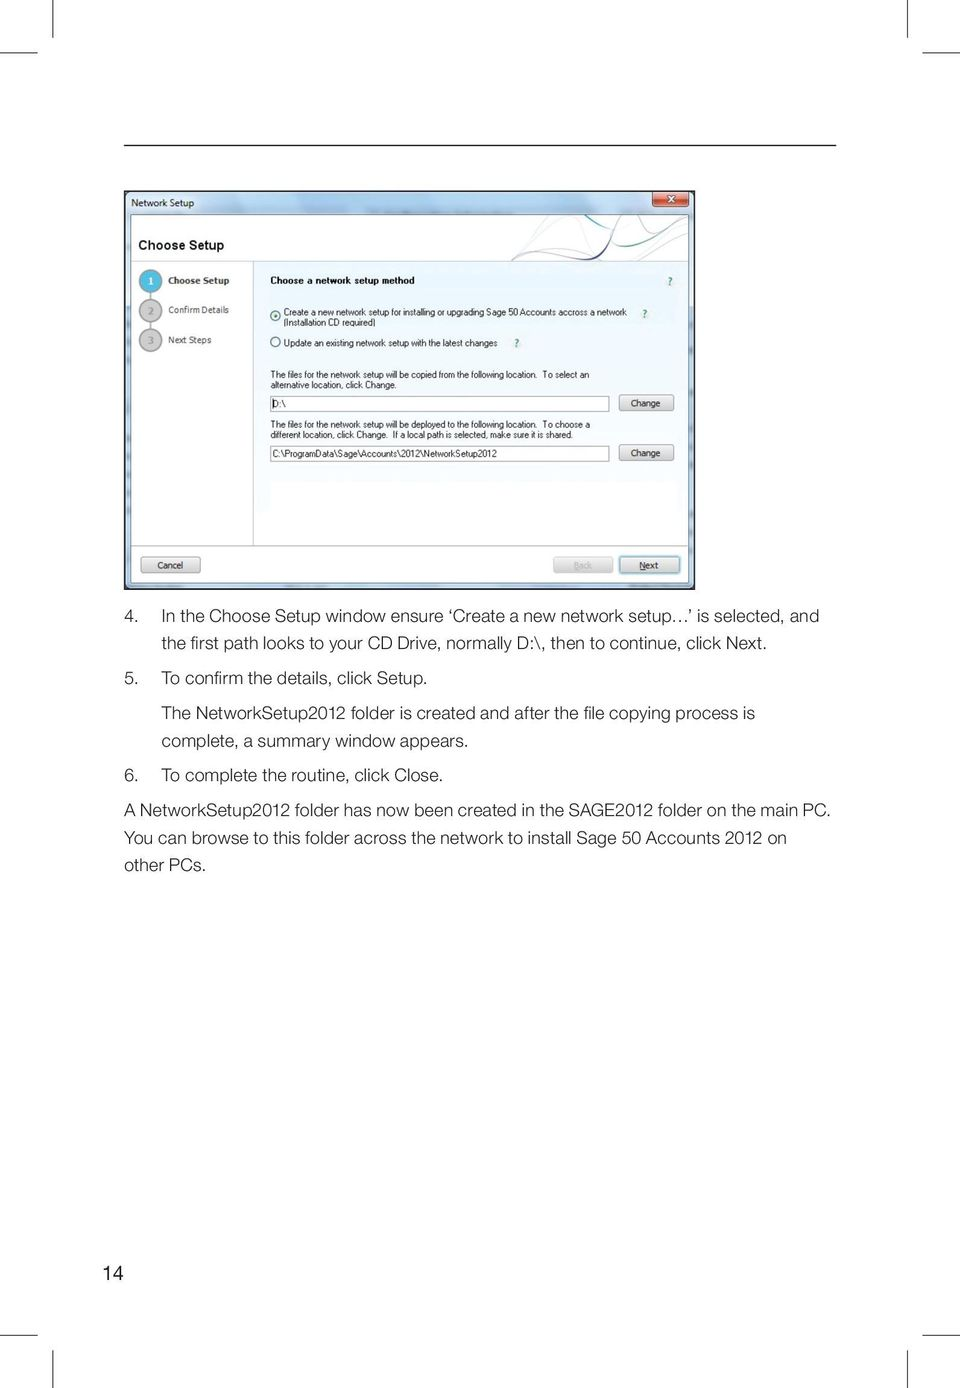 The NetworkSetup2012 folder is created and after the file copying process is complete, a summary window appears. 6.